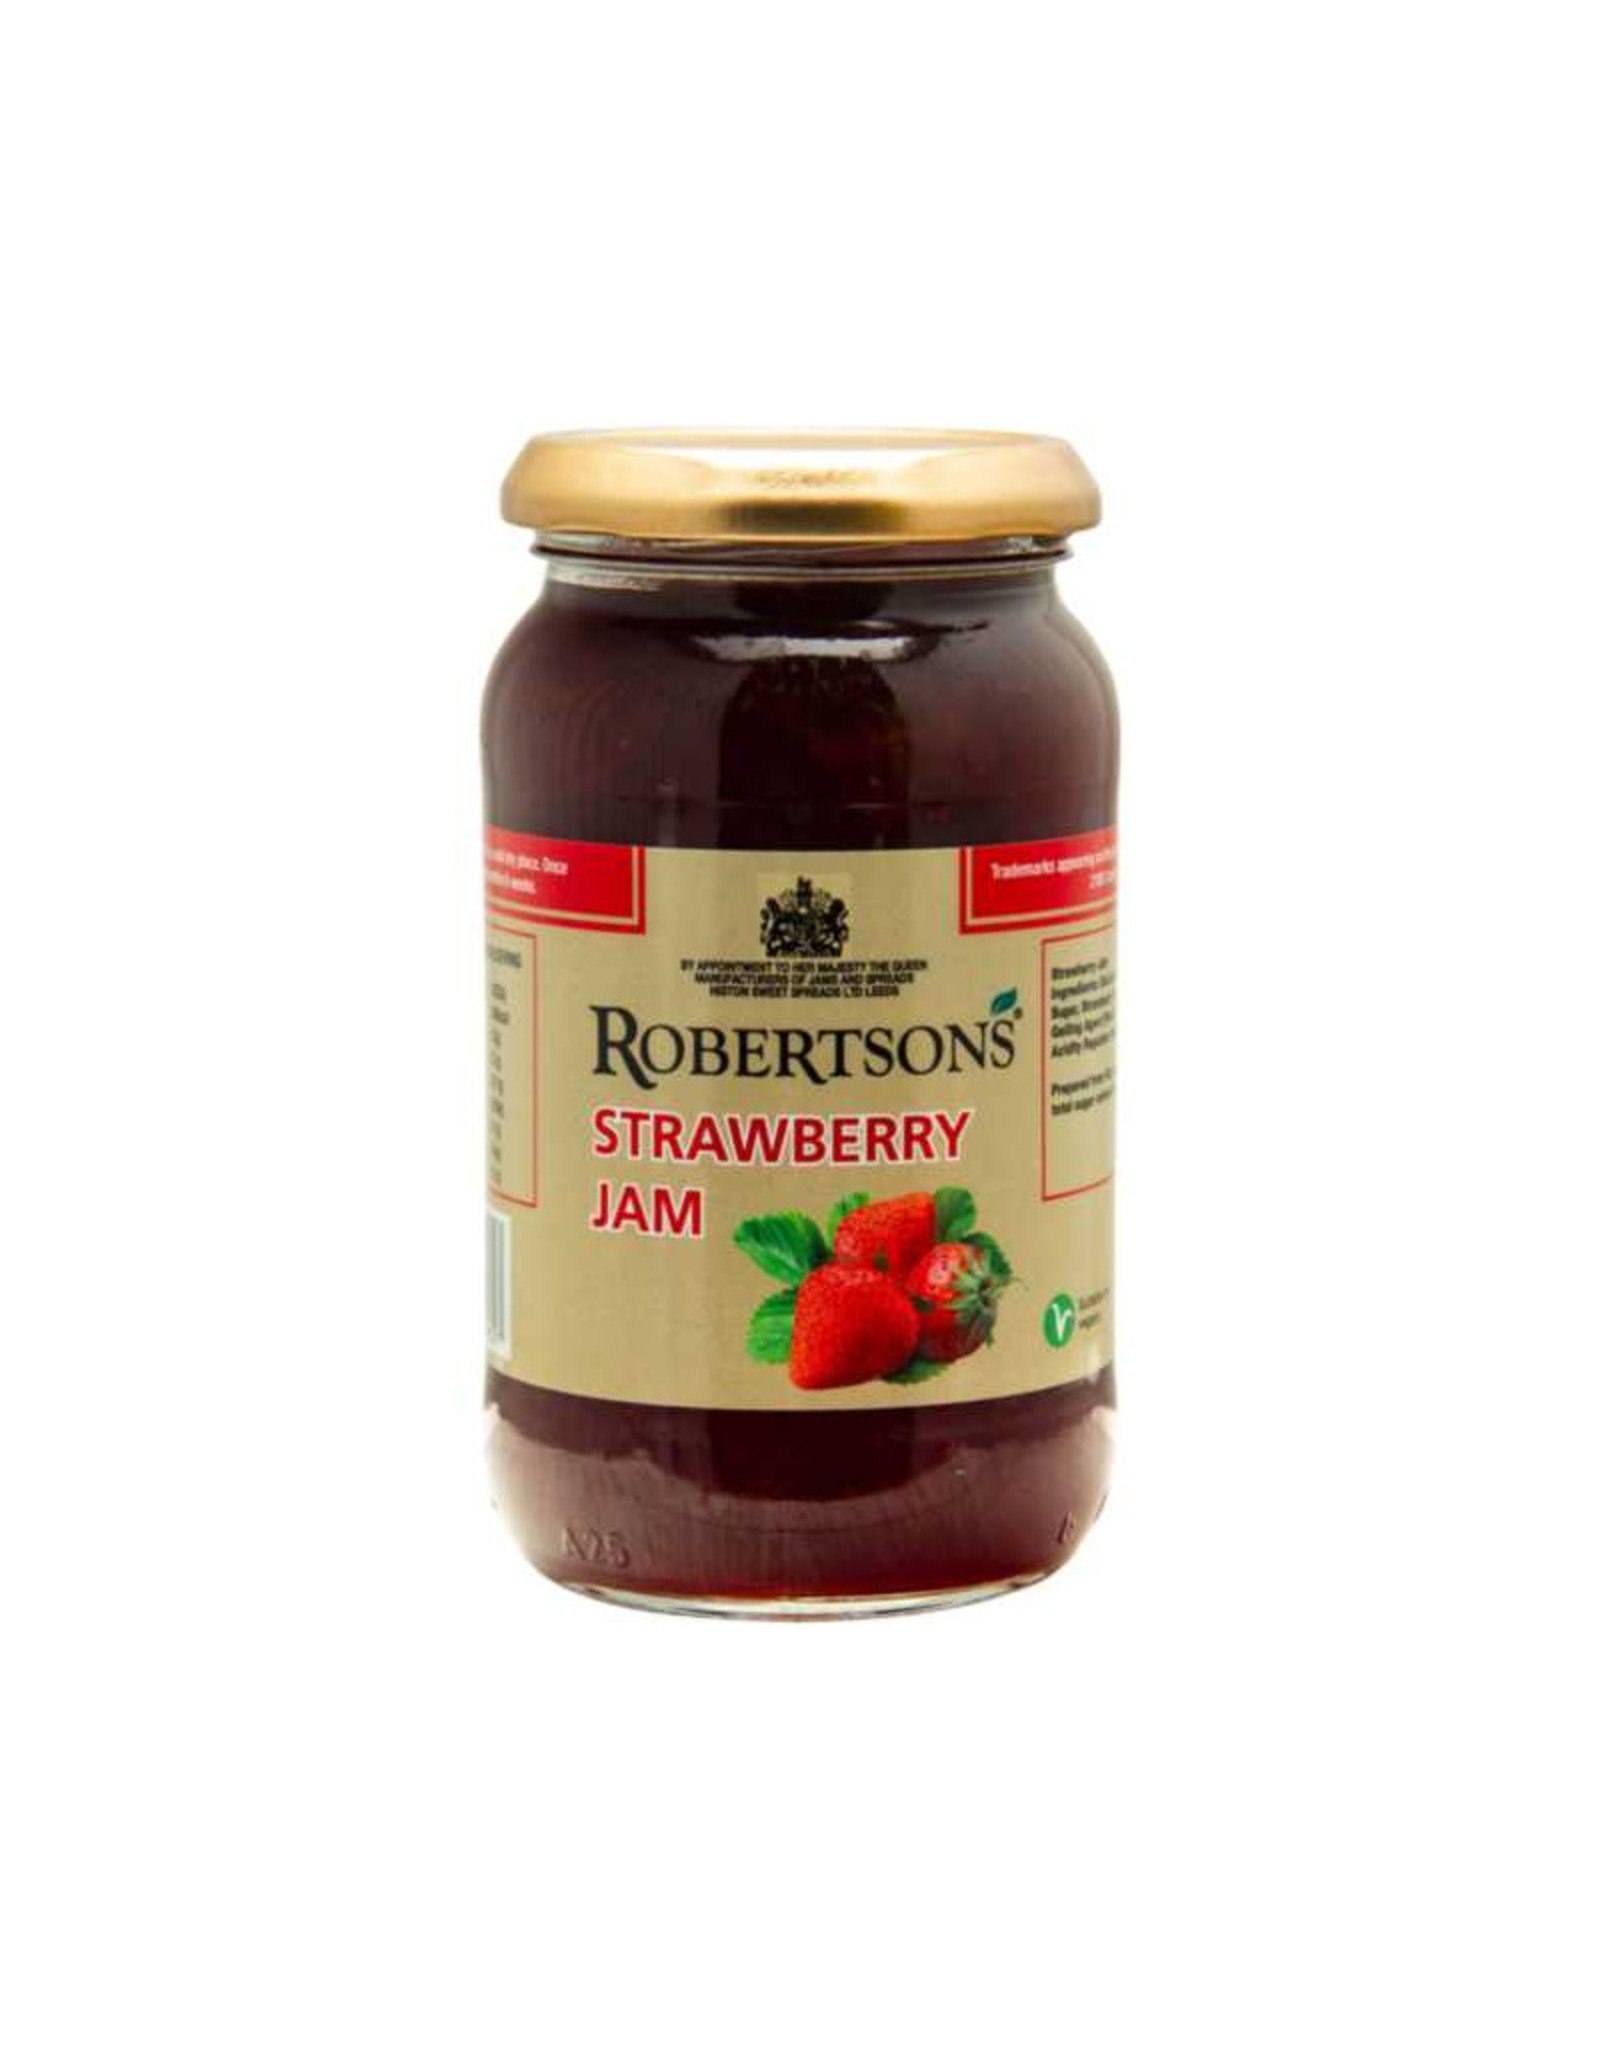 Robertson's Strawberry Jam 454g Jar